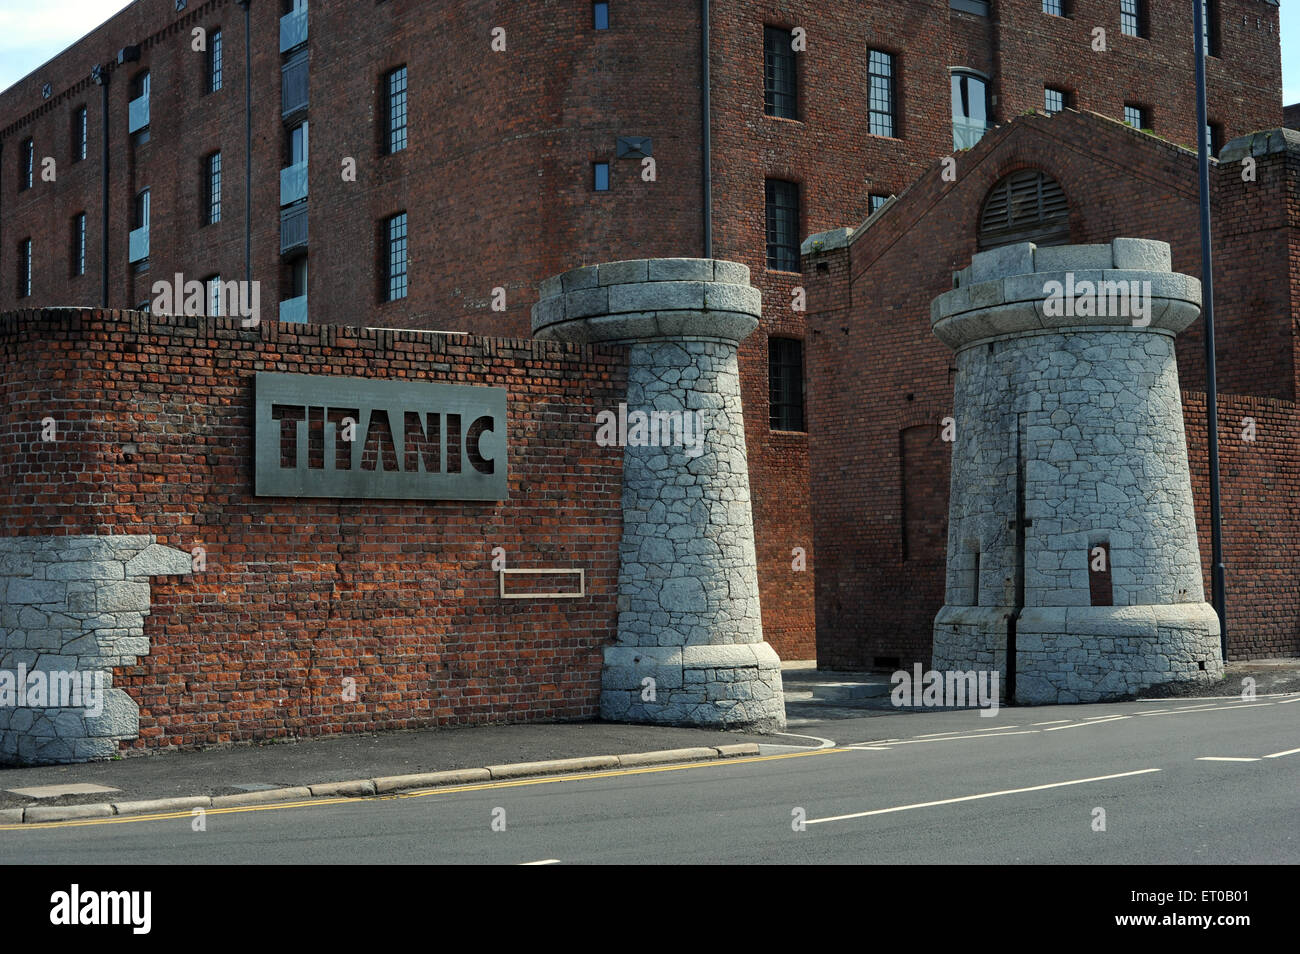 Titanic Hotel, Liverpool, England, UK. Part of the redevelopment of the historic Stanley Dock complex, this trendy, Stock Photo